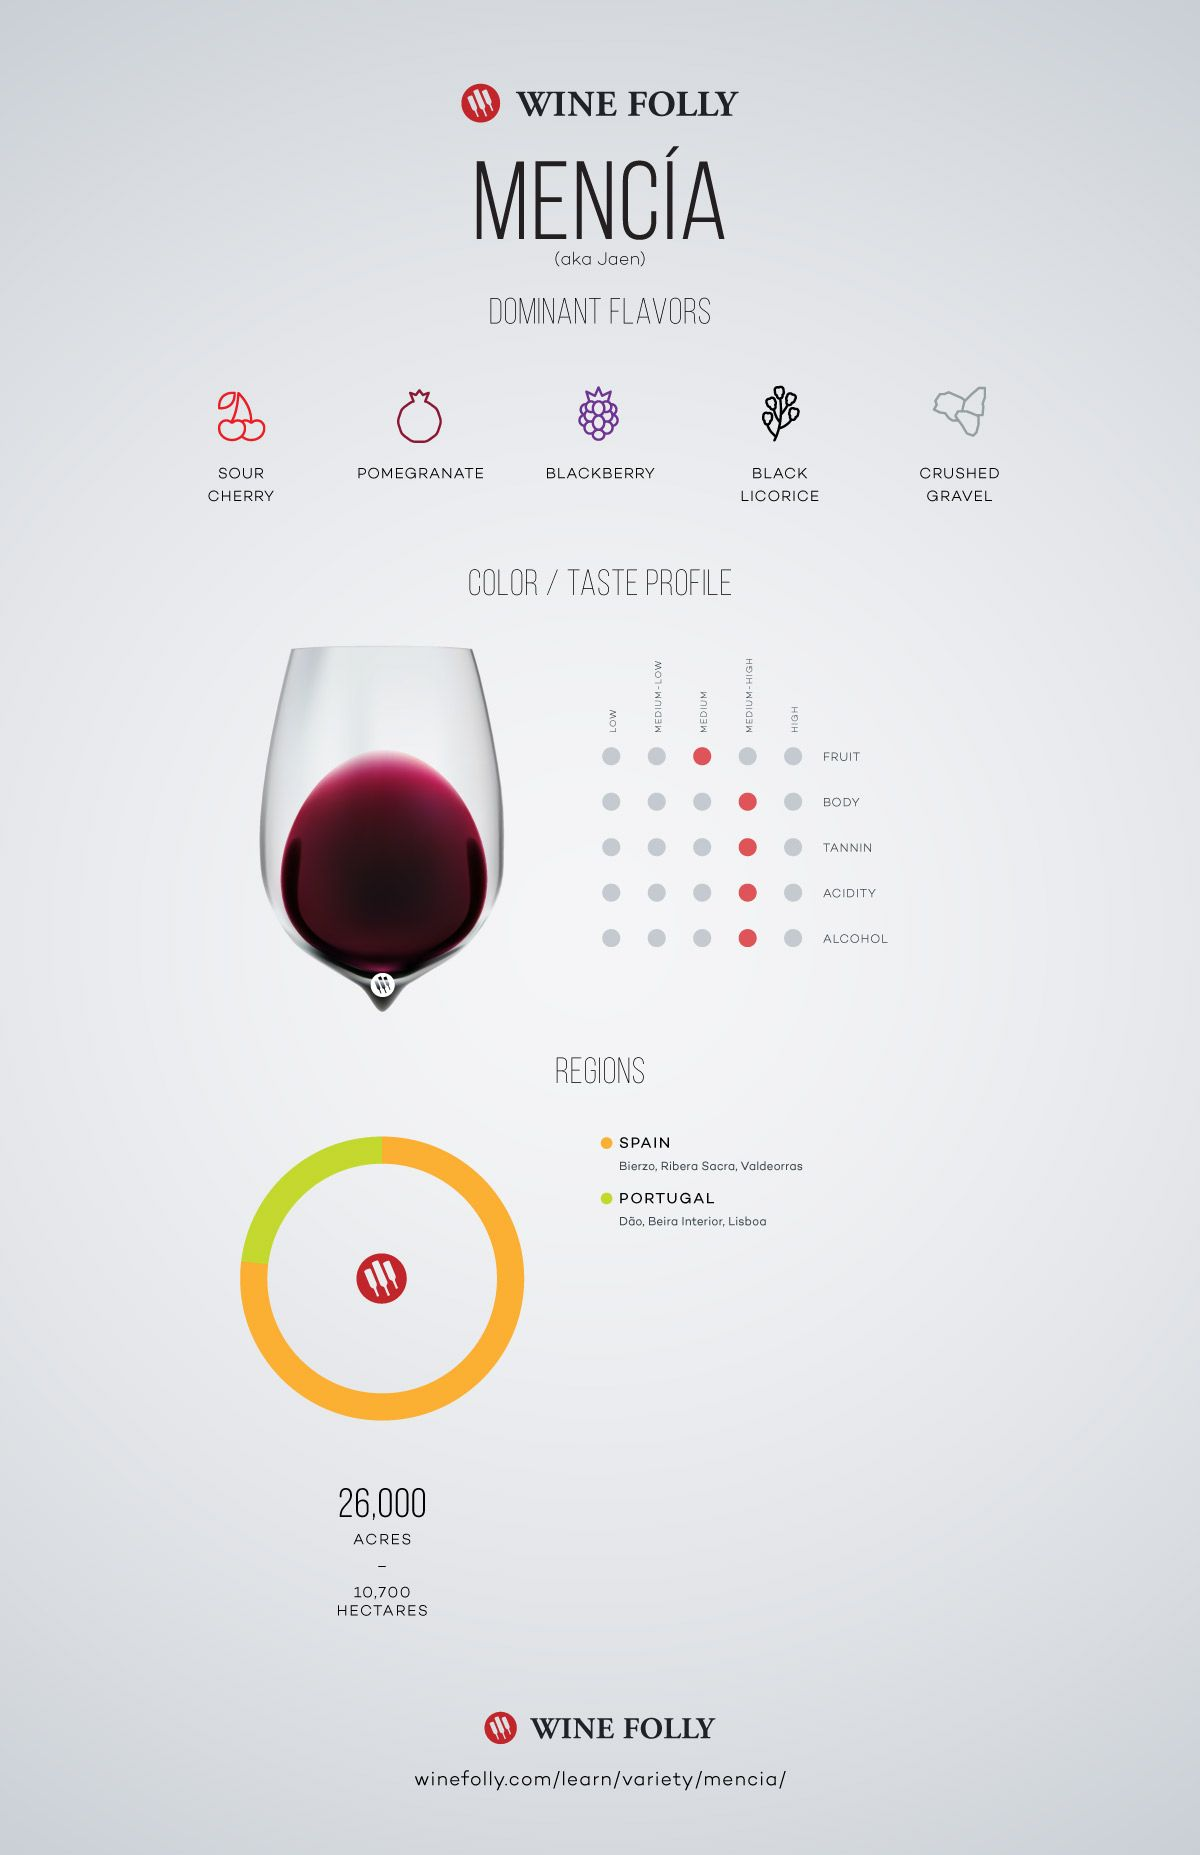 Mencia - Jaen Wine Taste Profile and information by Wine Folly